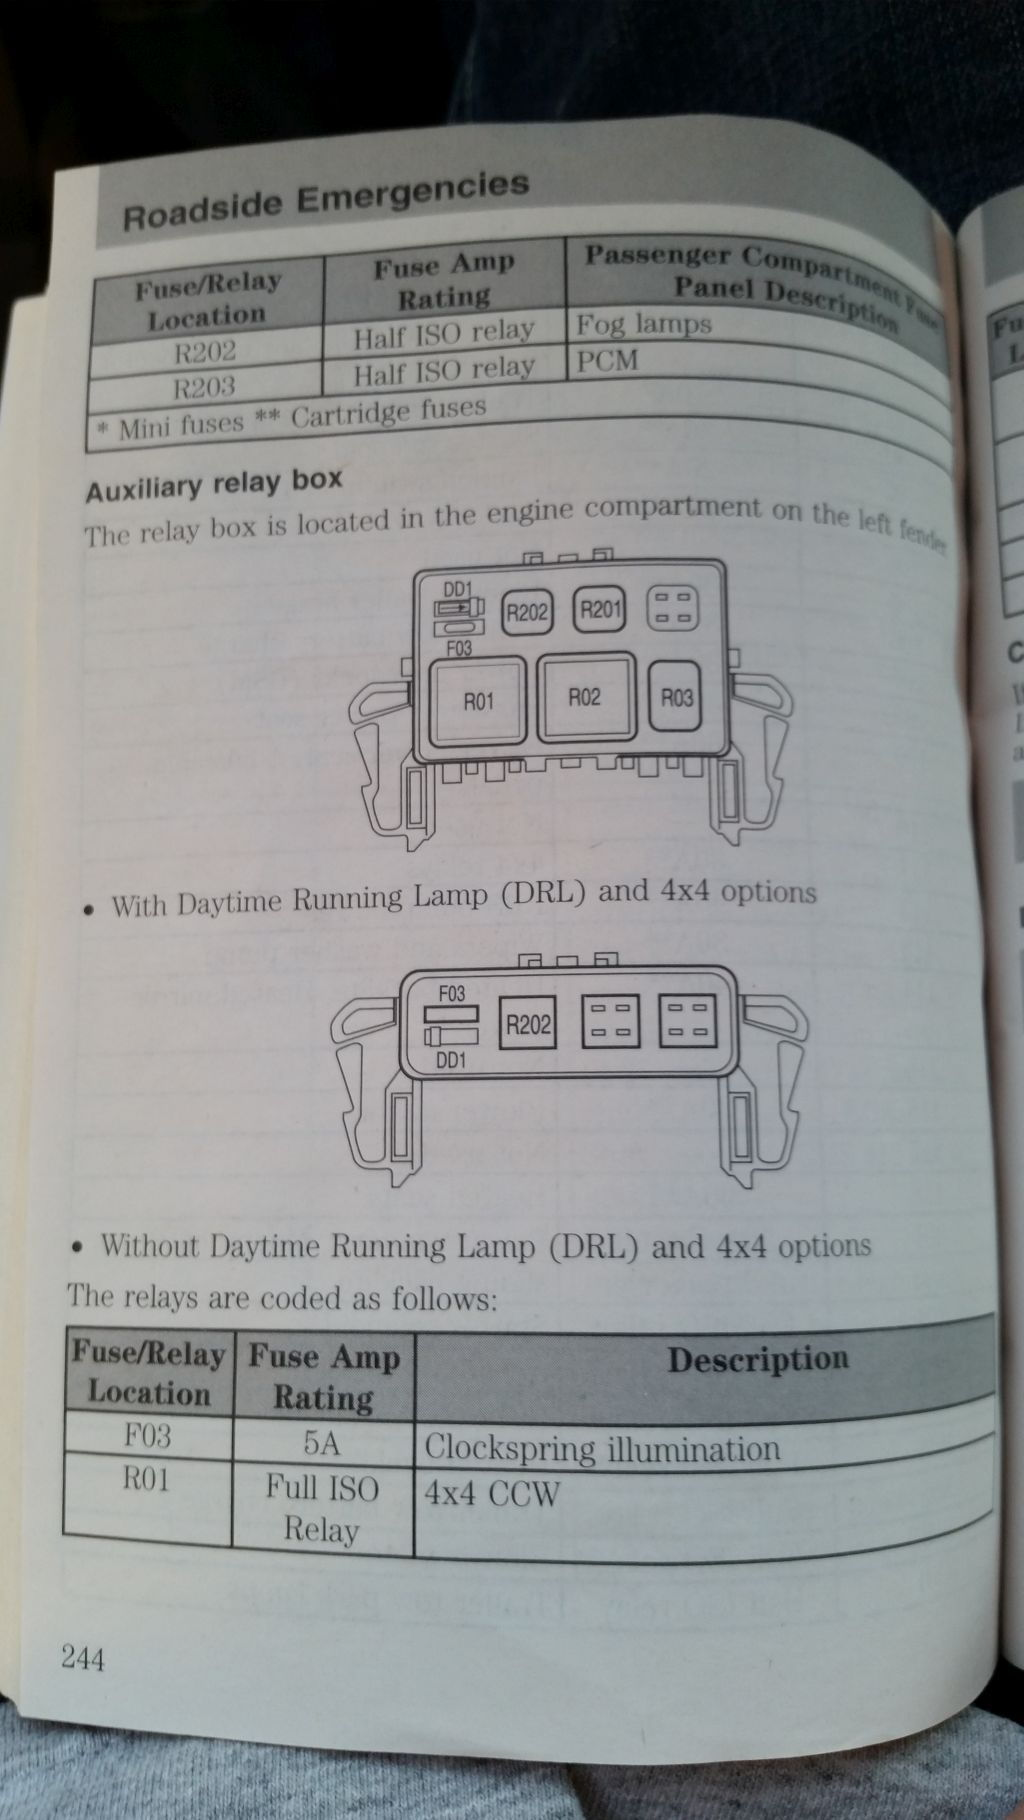 4x4 wiring diagram - Page 2 - Ford F150 Forum - Community ...